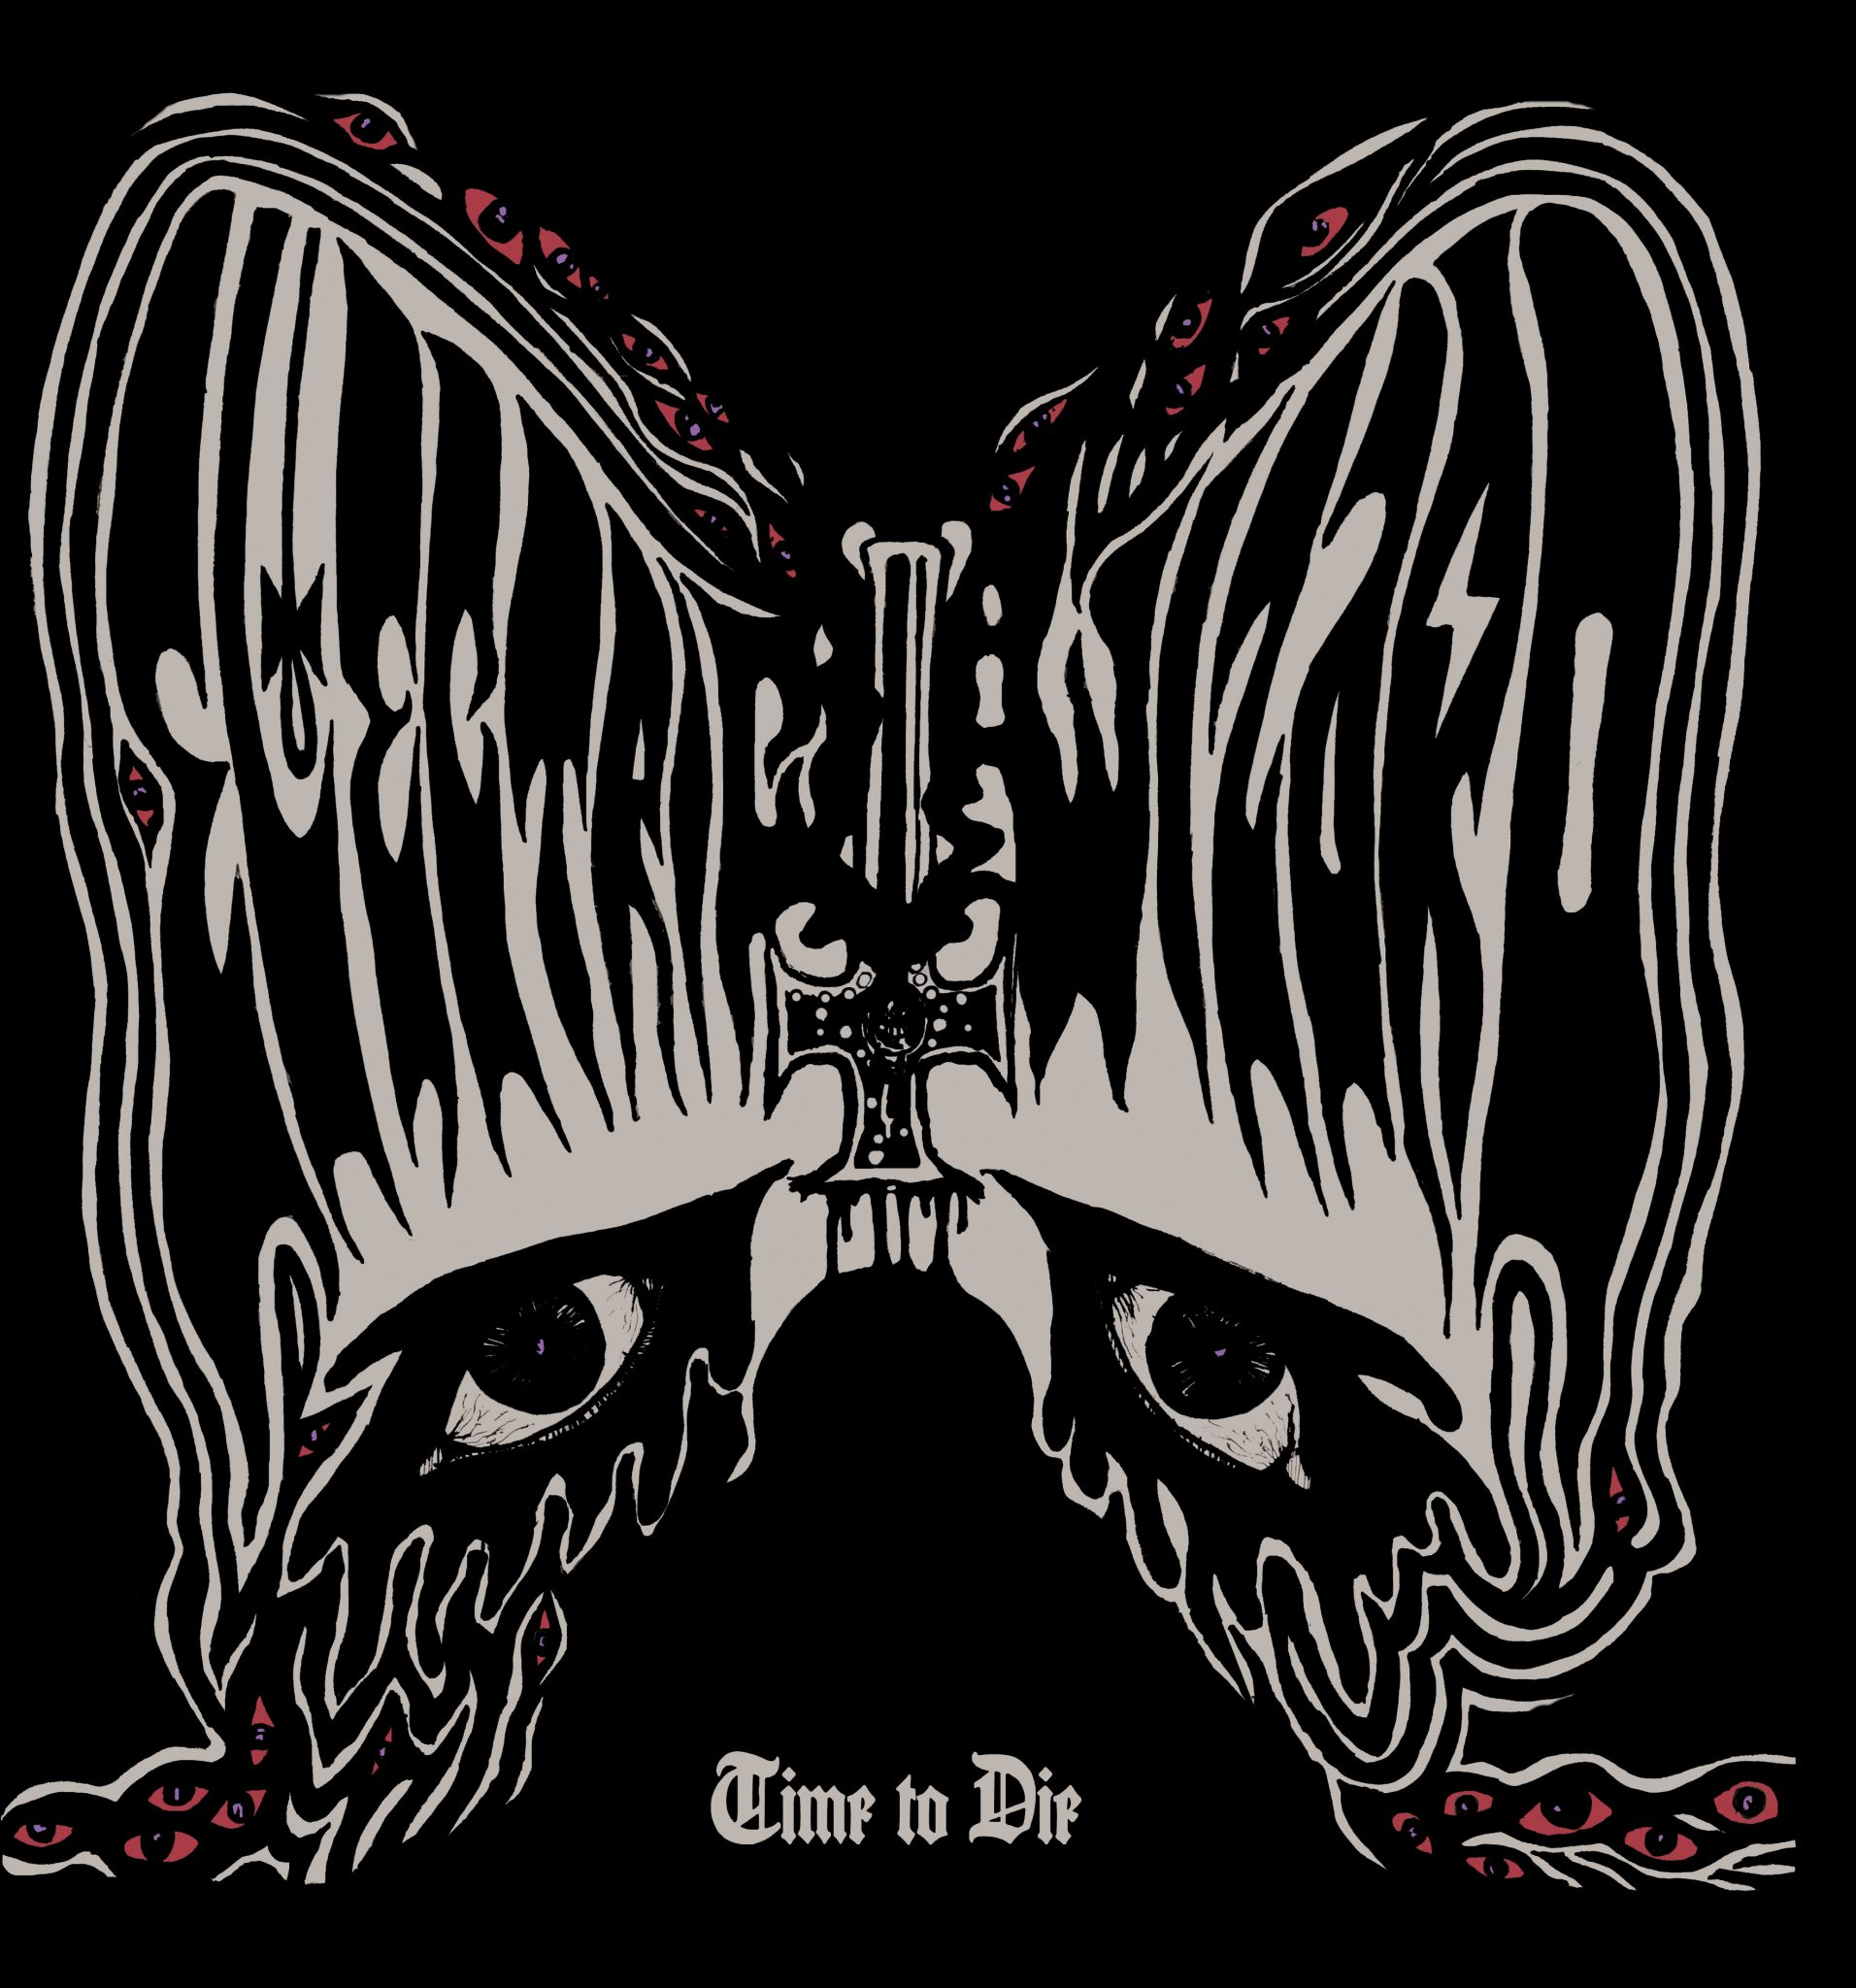 electric-wizard-album-cover-time-to-die.jpg